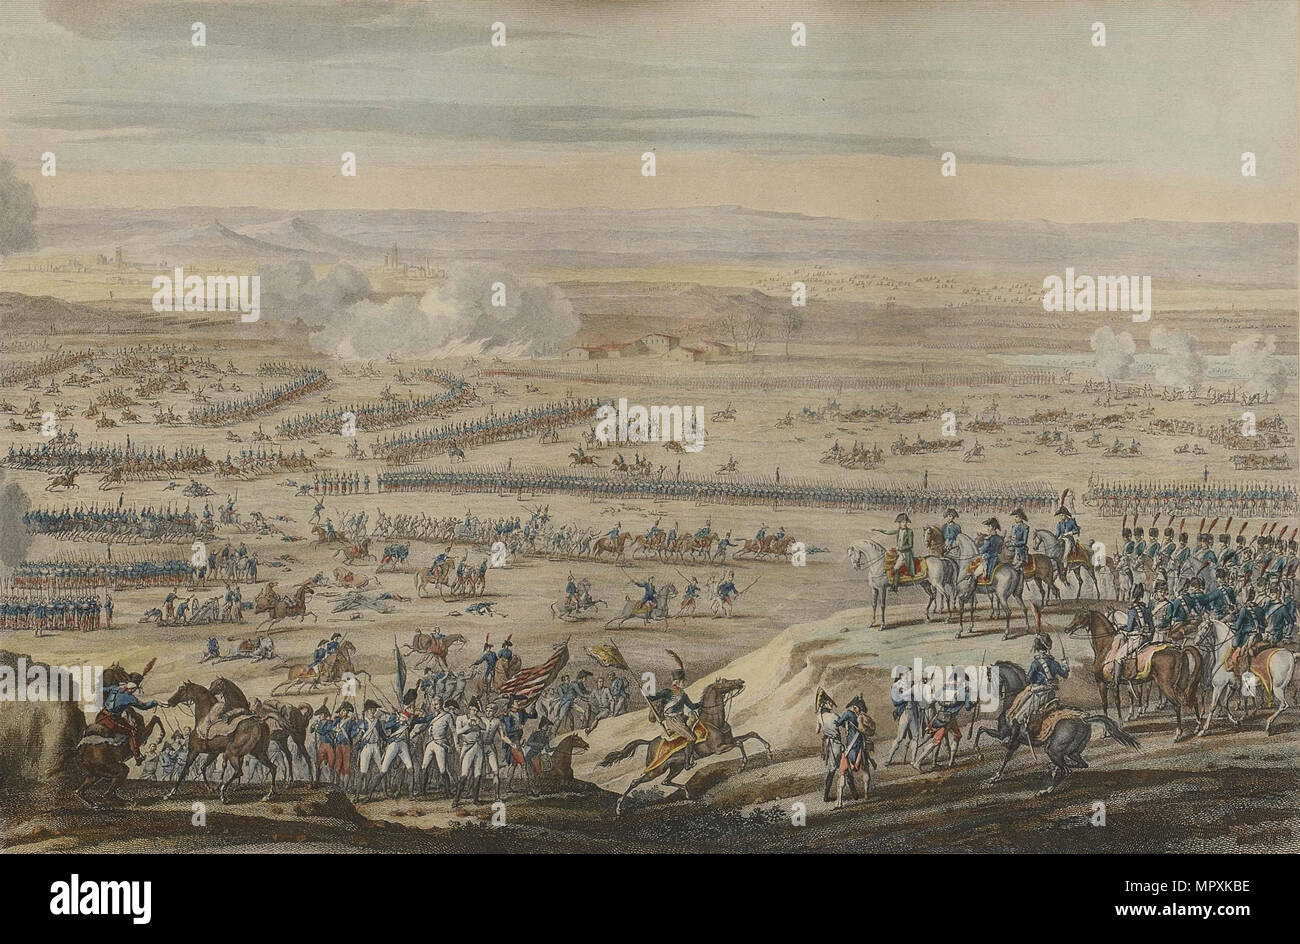 The Battle of Austerlitz on December 2, 1805. - Stock Image